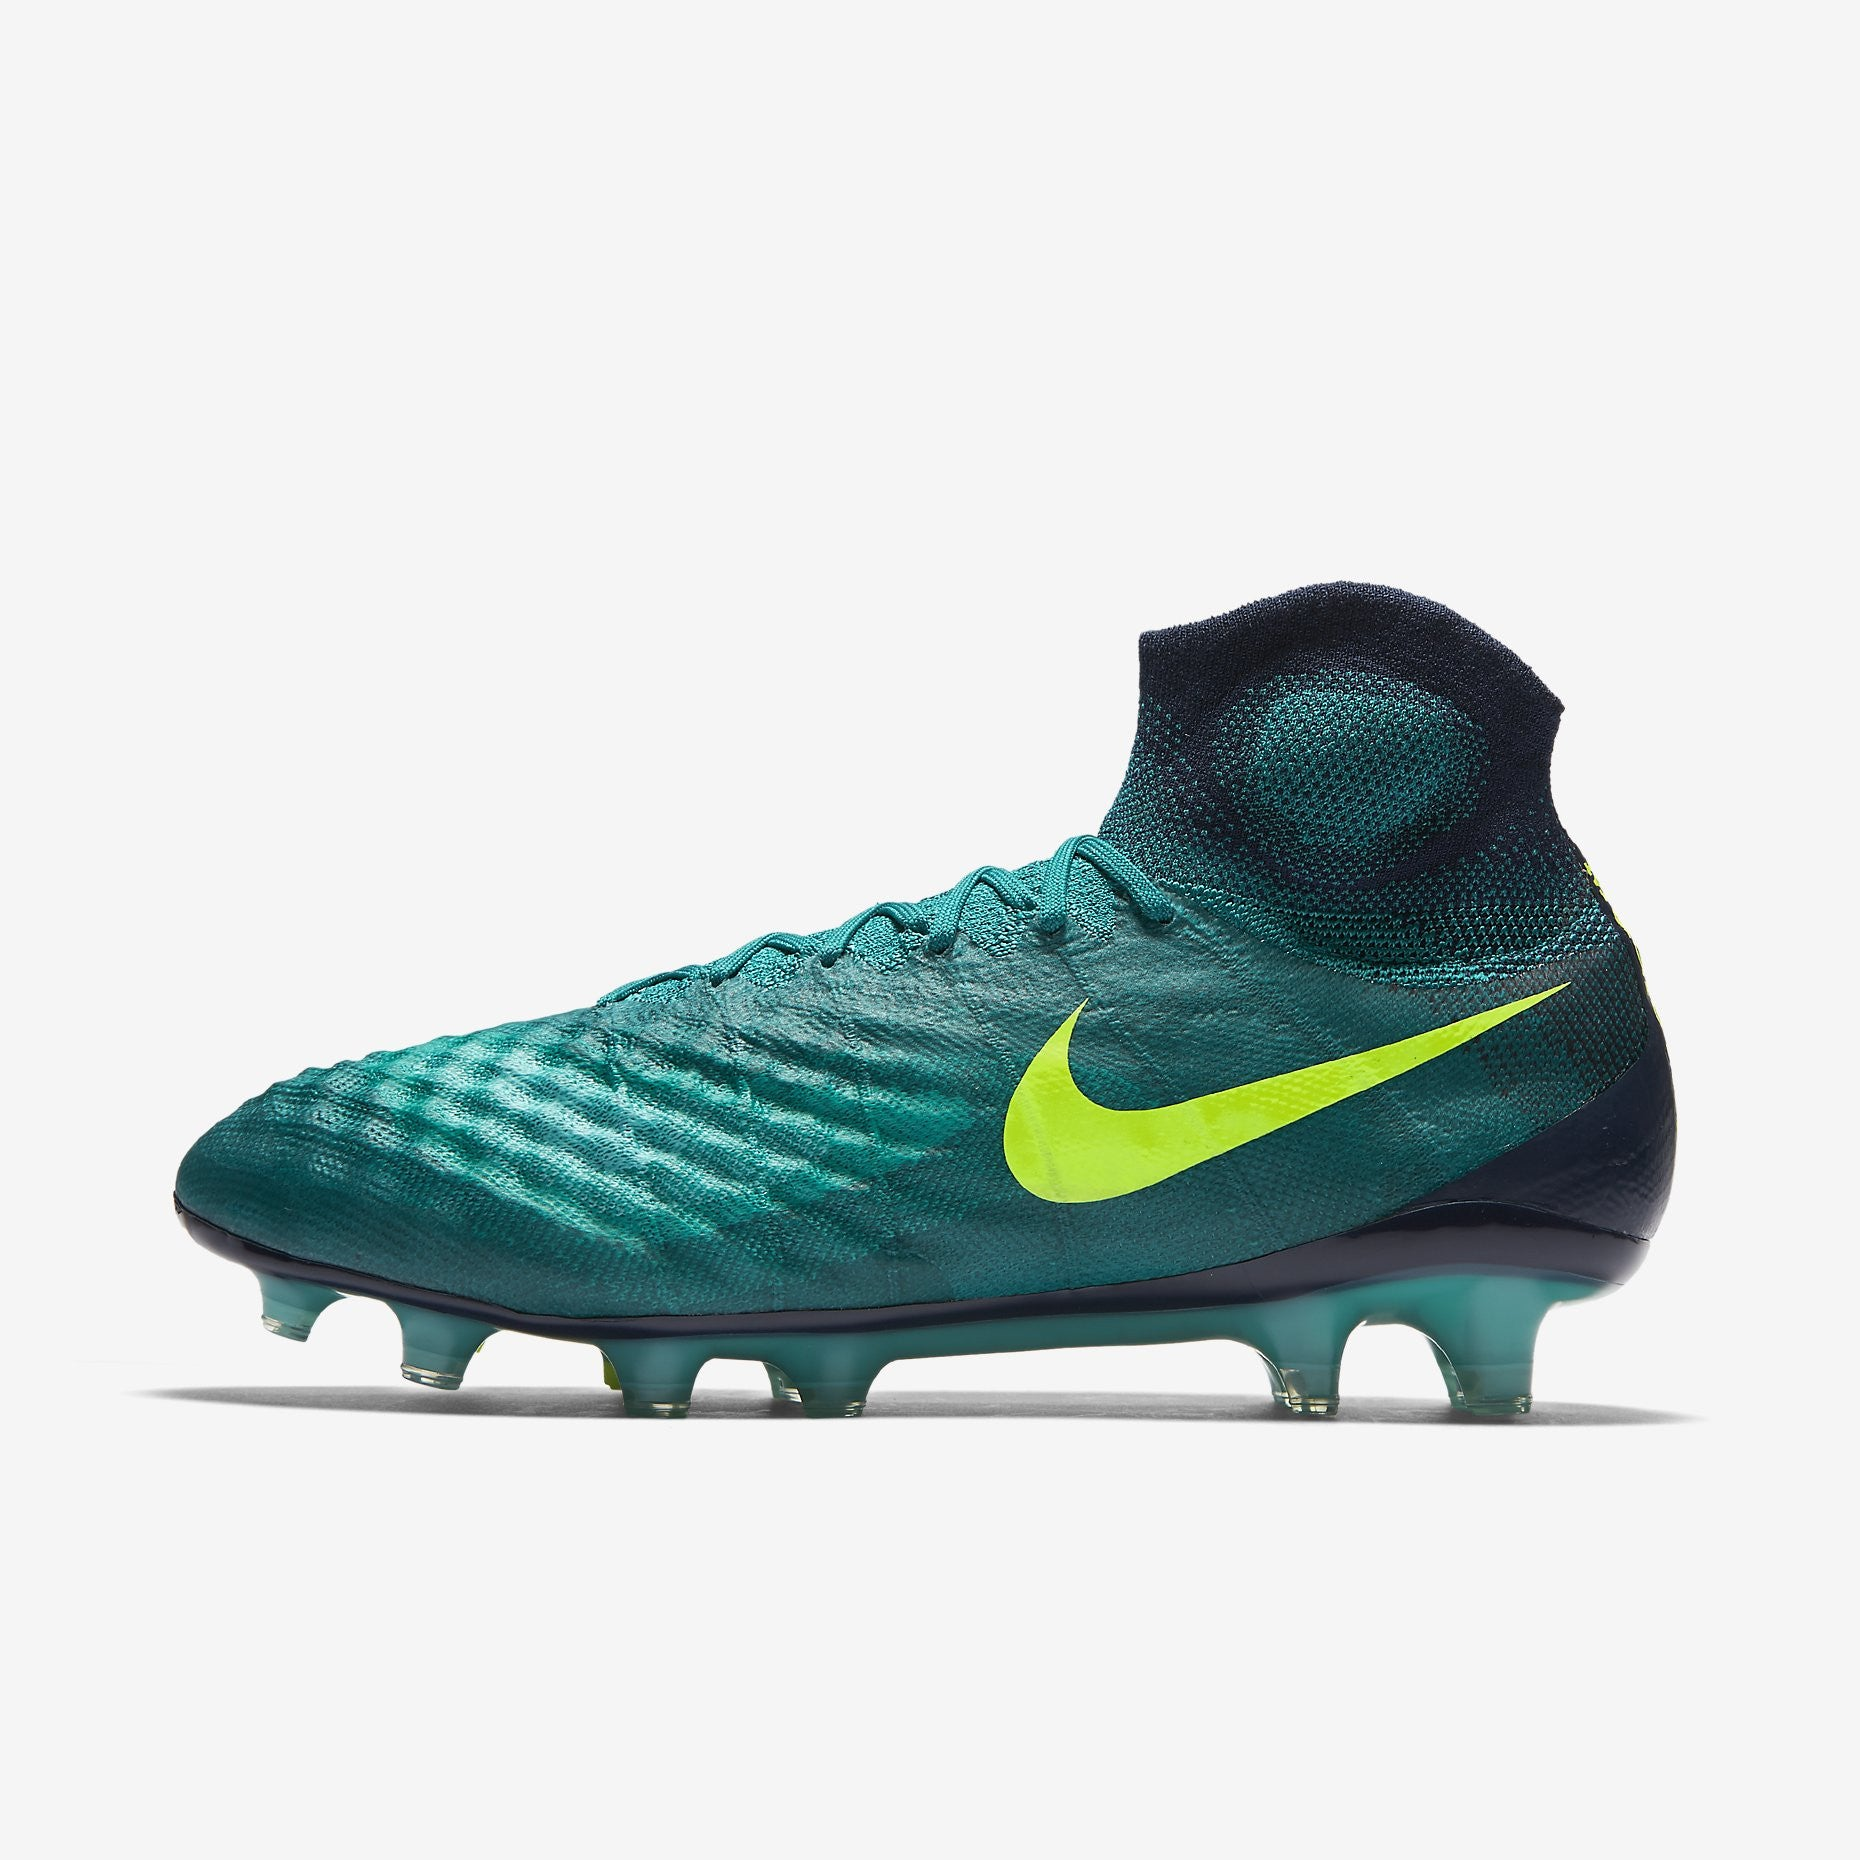 882cca644 Nike - Nike Men's Magista Obra II Firm-Ground Football Boot - La Liga Soccer